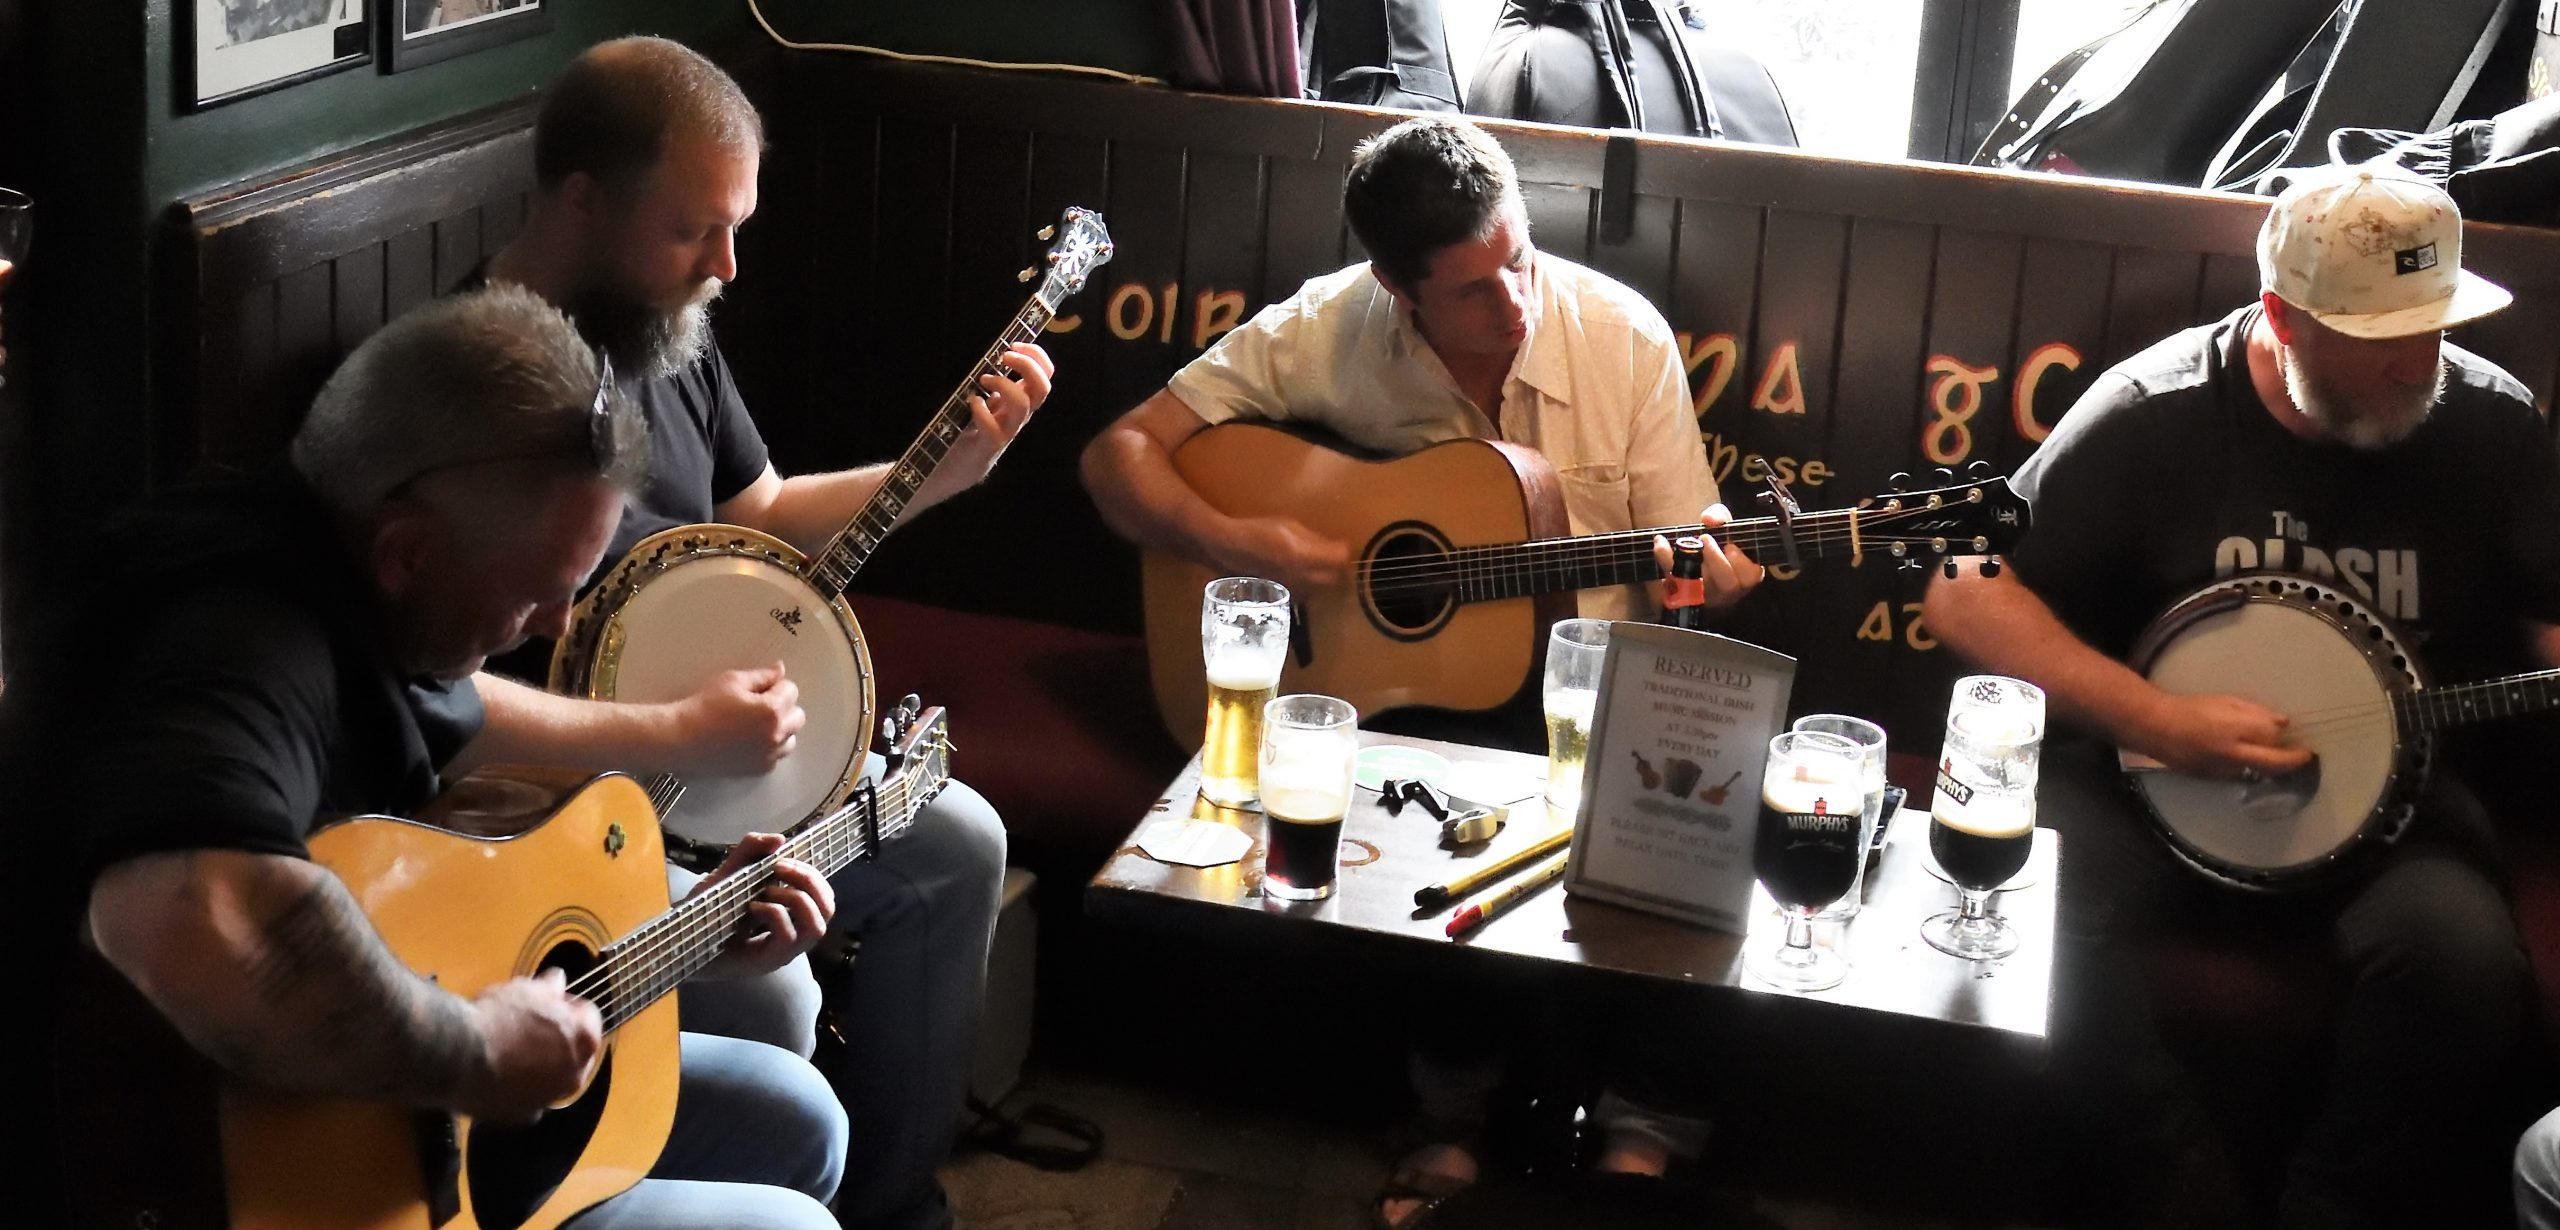 Galway trad session. Taaffees bar. Music tours